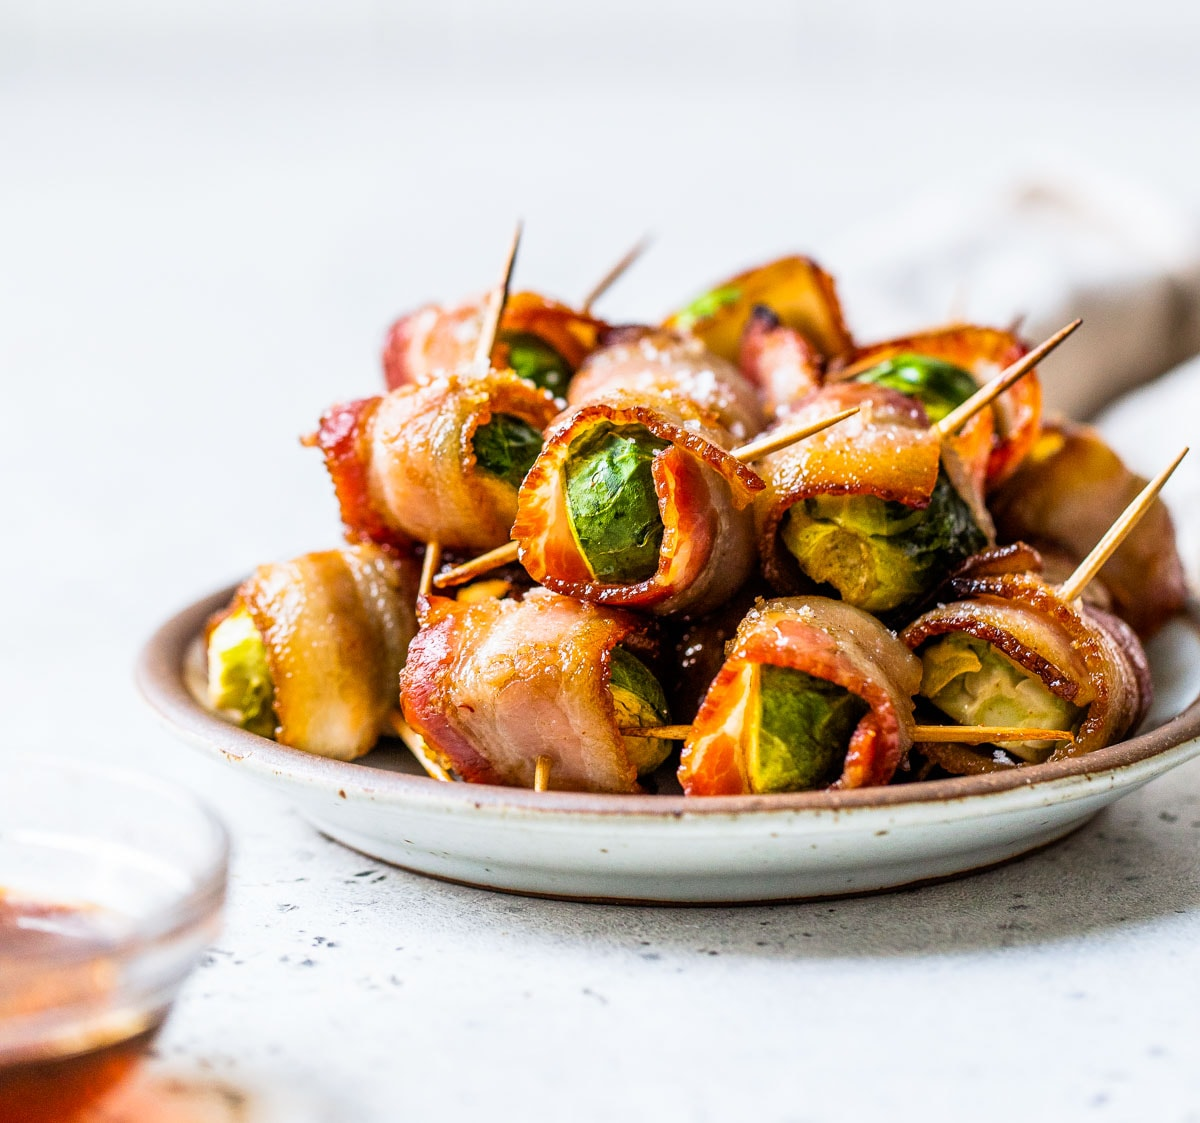 Skewered bacon wrapped Brussels sprouts